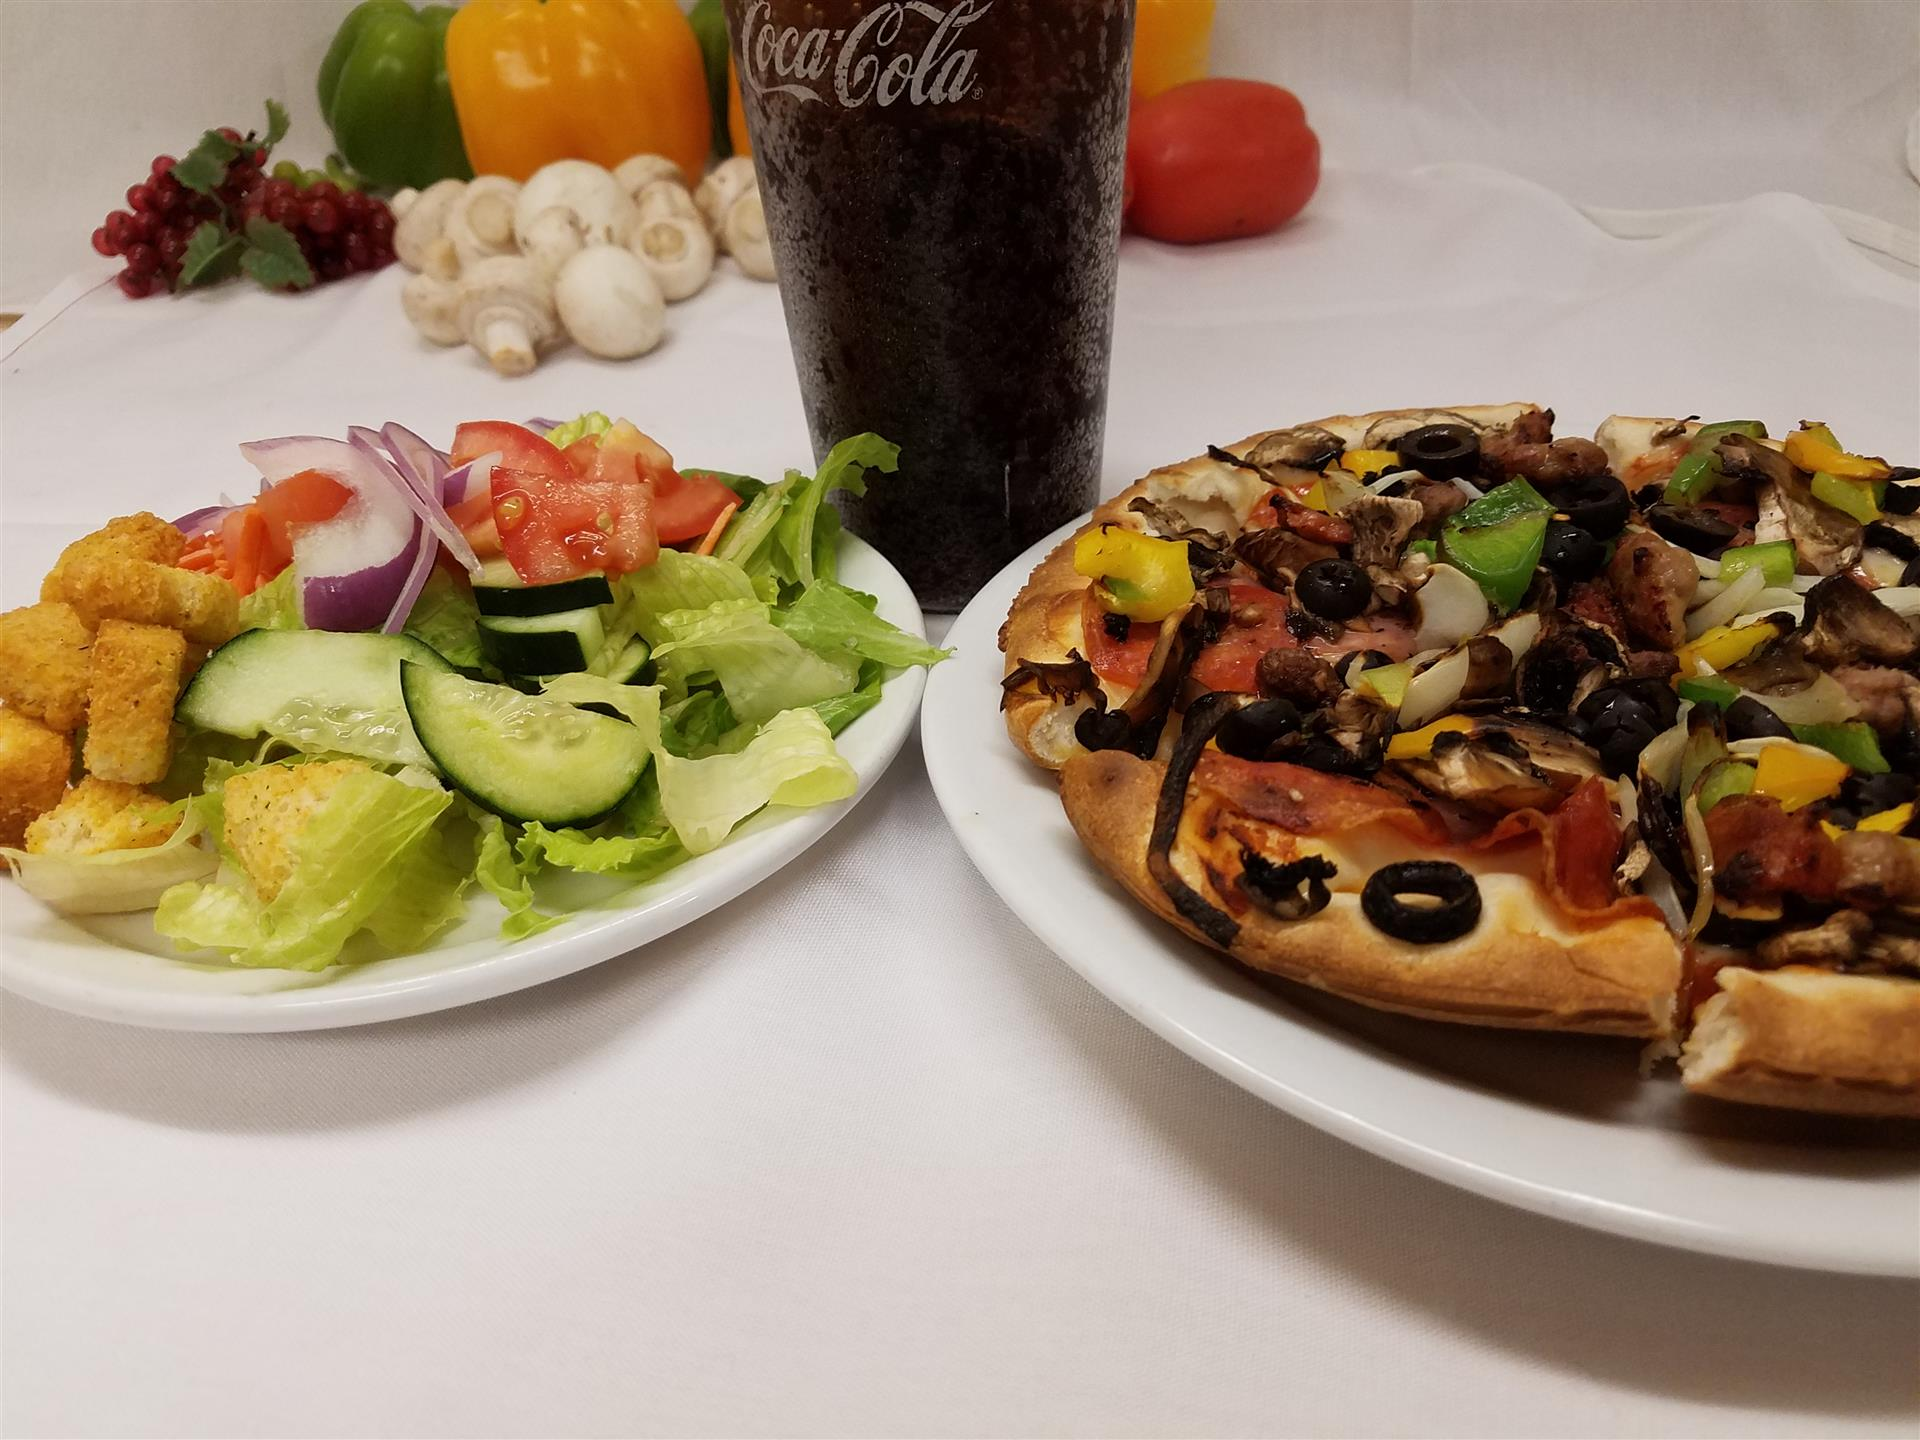 personal lunch special pizza with veggies served with a house salad and a soda